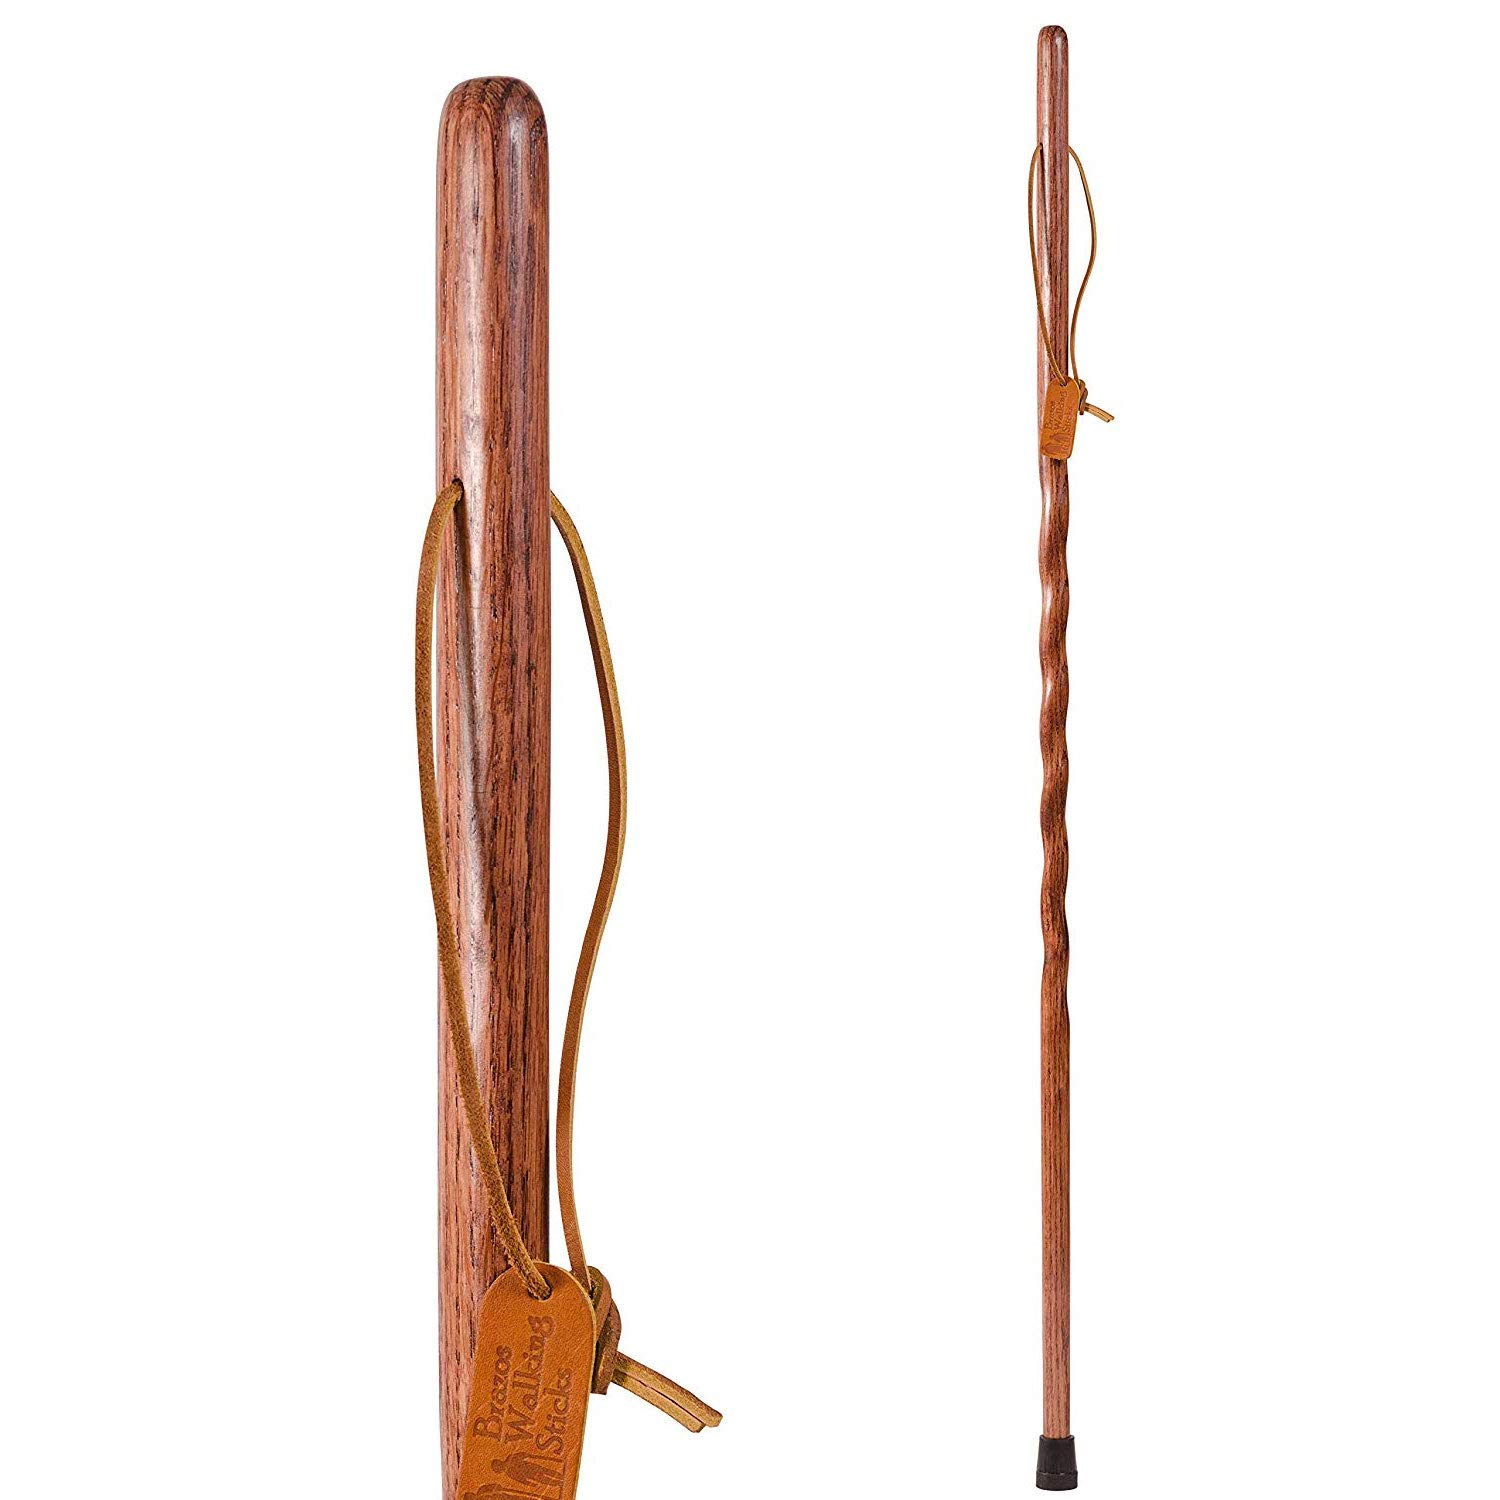 Brazos Trekking Pole Hiking Stick for Men and Women Handcrafted of Lightweight Wood and made in the USA, Red Oak, 55 Inches